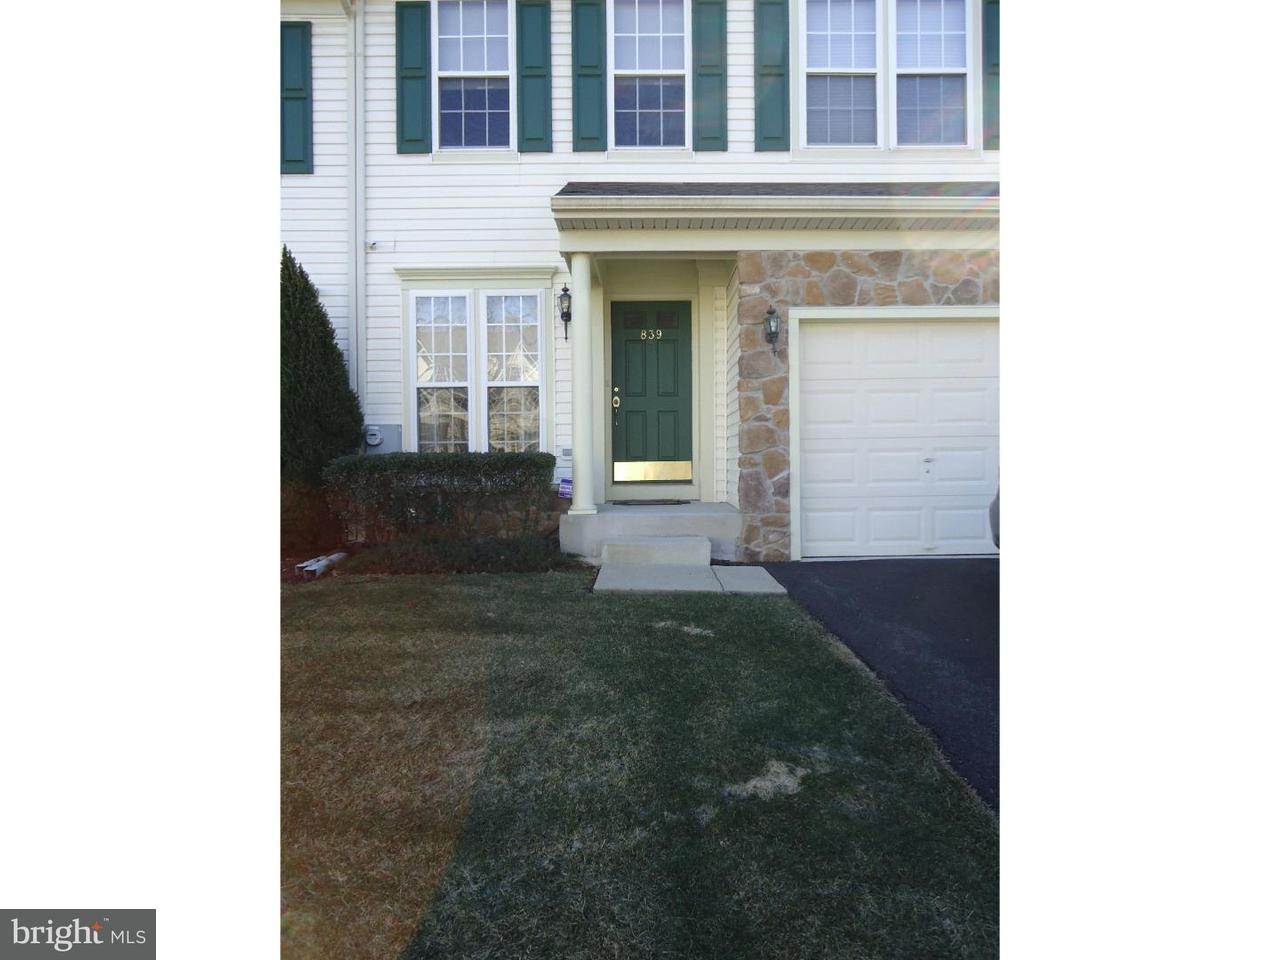 Townhouse for Rent at 839 GERANIUM Drive Warrington, Pennsylvania 18976 United States